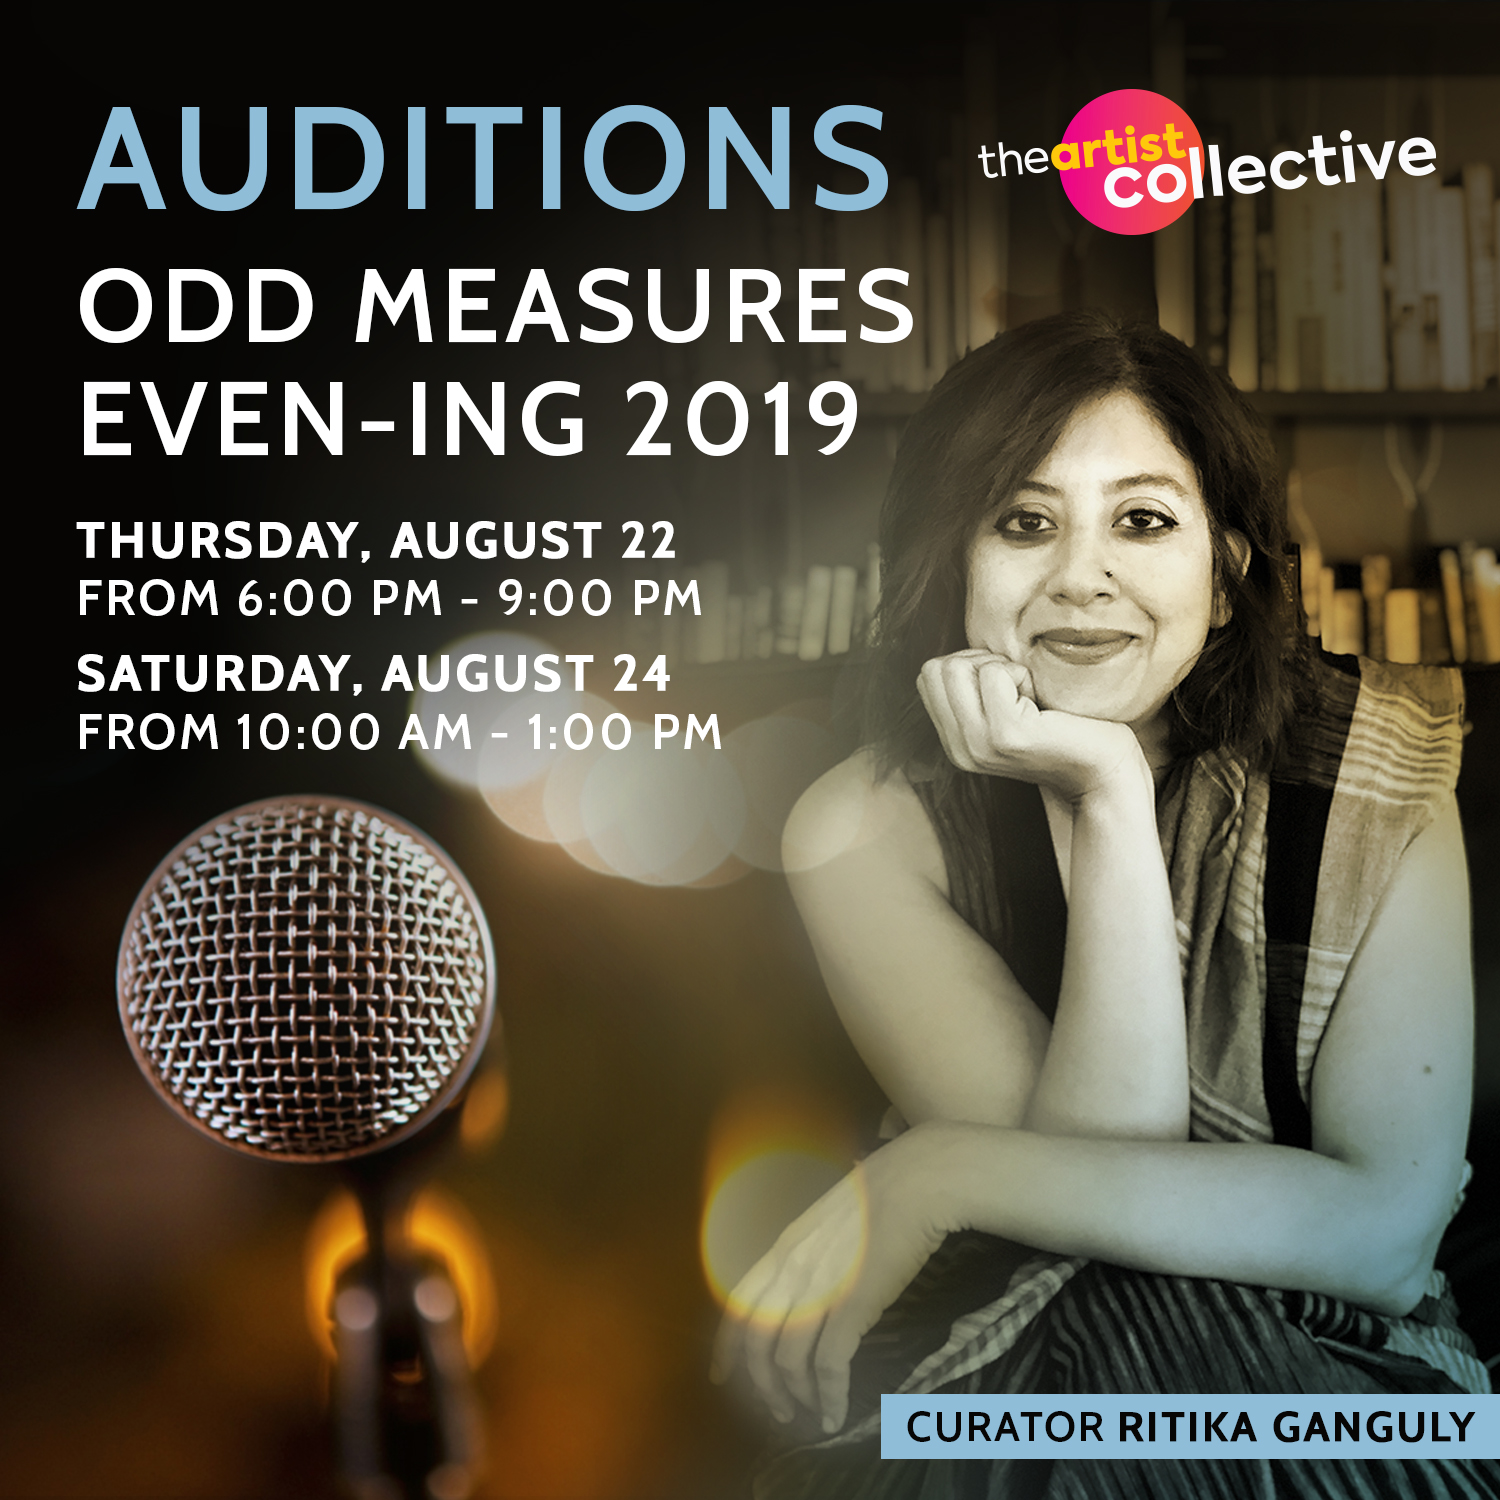 Odd Measures Evening Poster, featuring a photo of curator Ritika Ganguly, a photo of a microphone, and text with the audition dates and times.